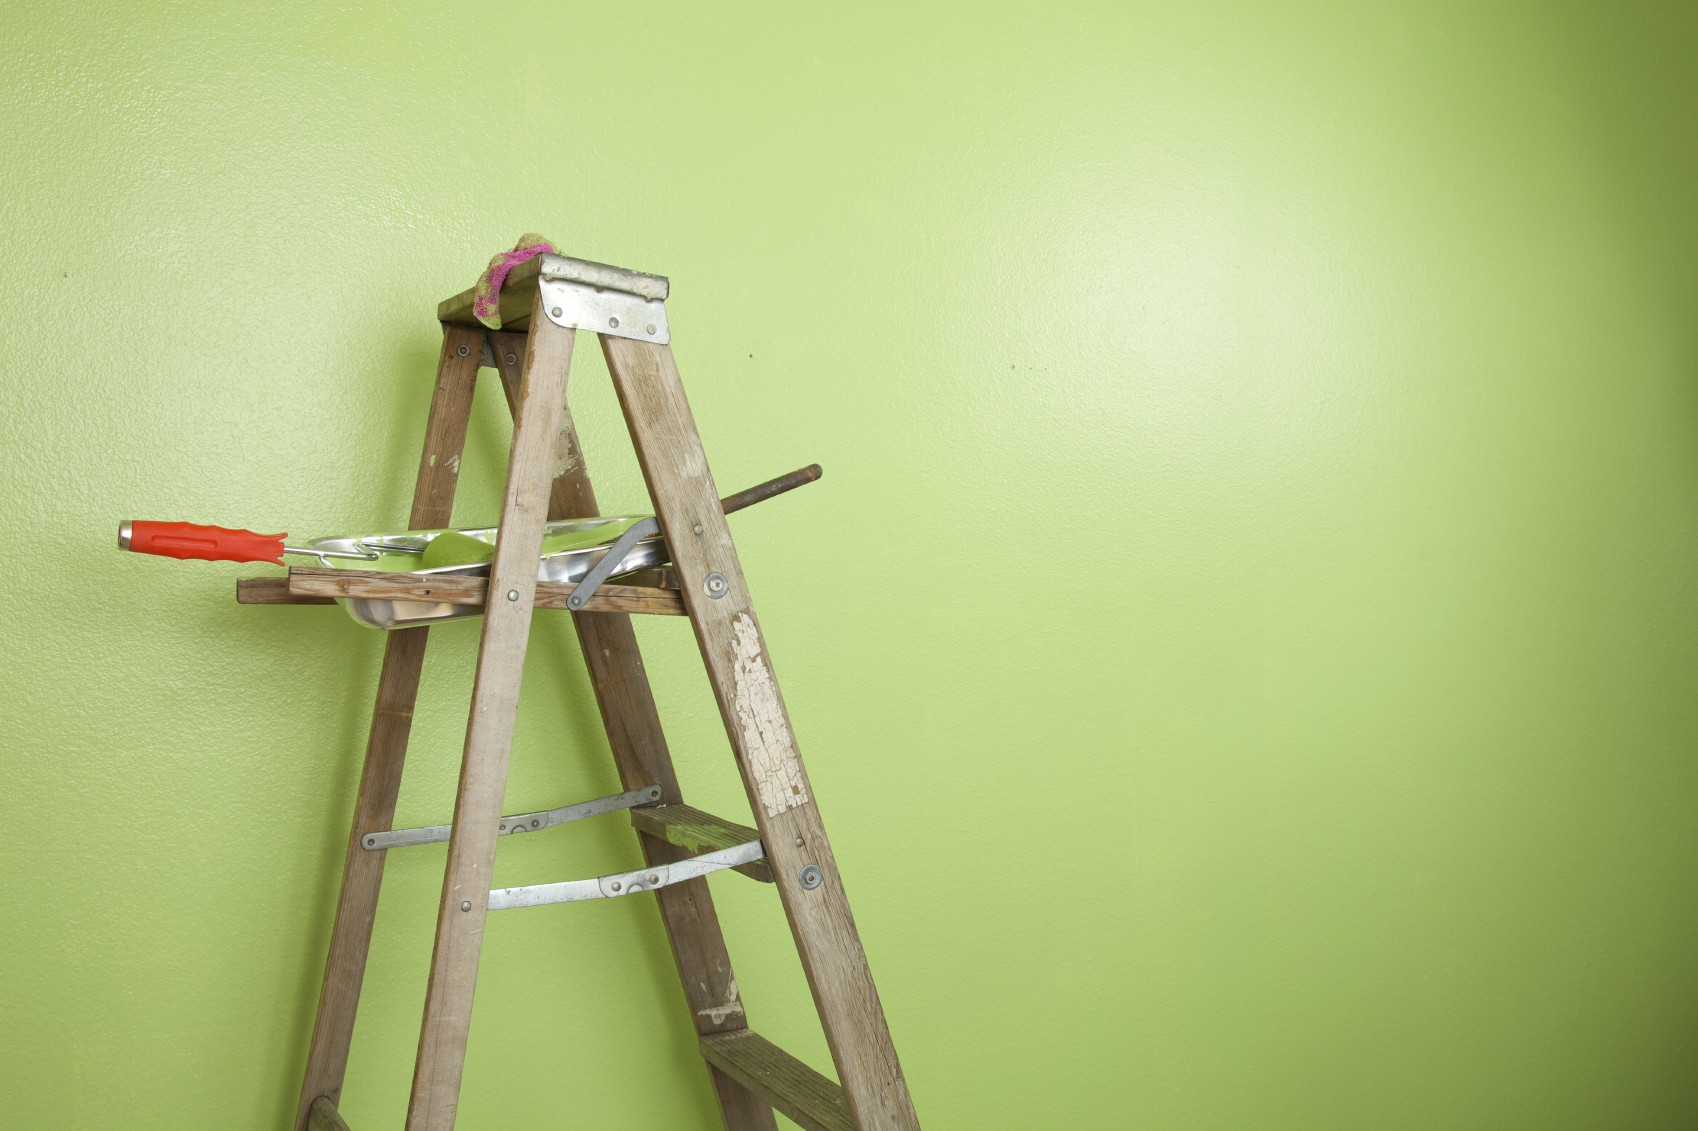 House Painting - The Langley Painters | The Langley Painters